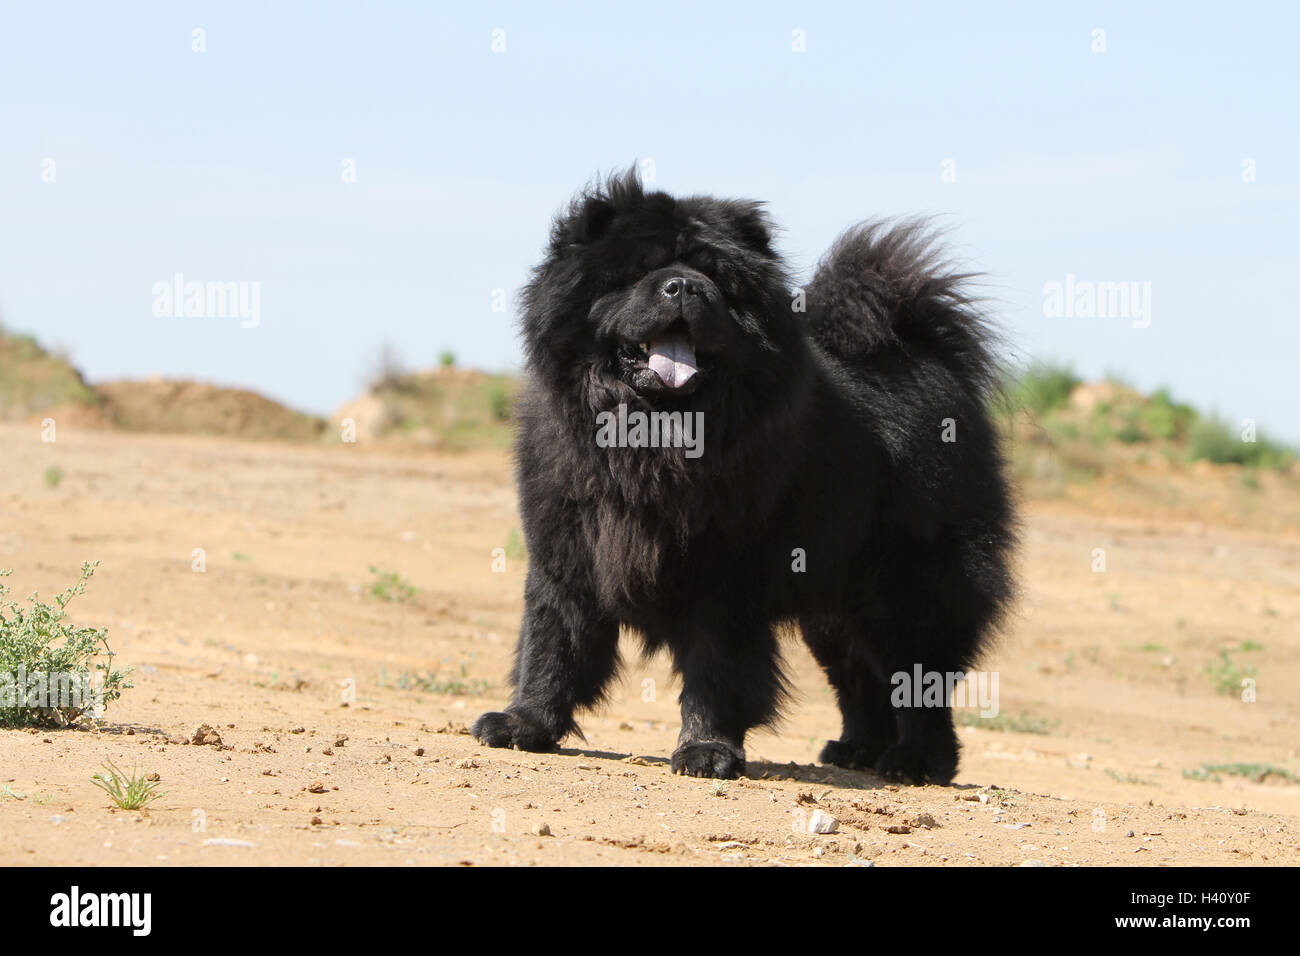 Dog Dogs Chow Chow Chow Chow Pet Chows China Pet Adult Black